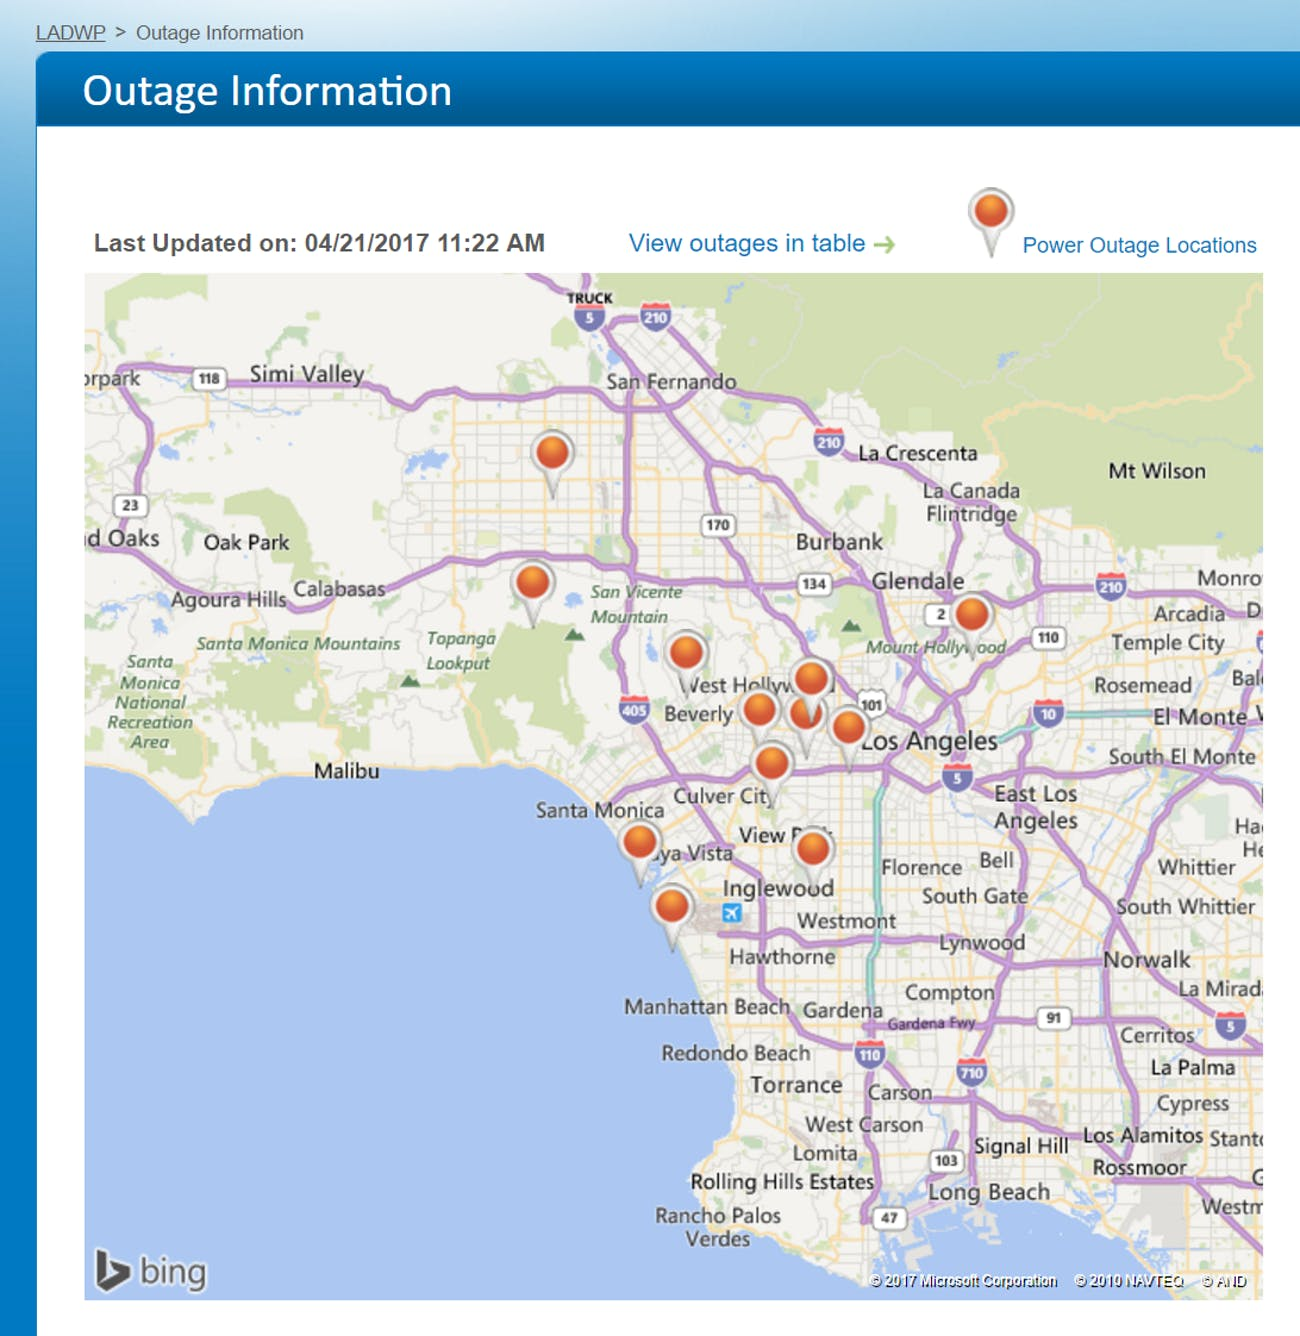 Power Outages Coincide In La New York And San Francisco Inverse